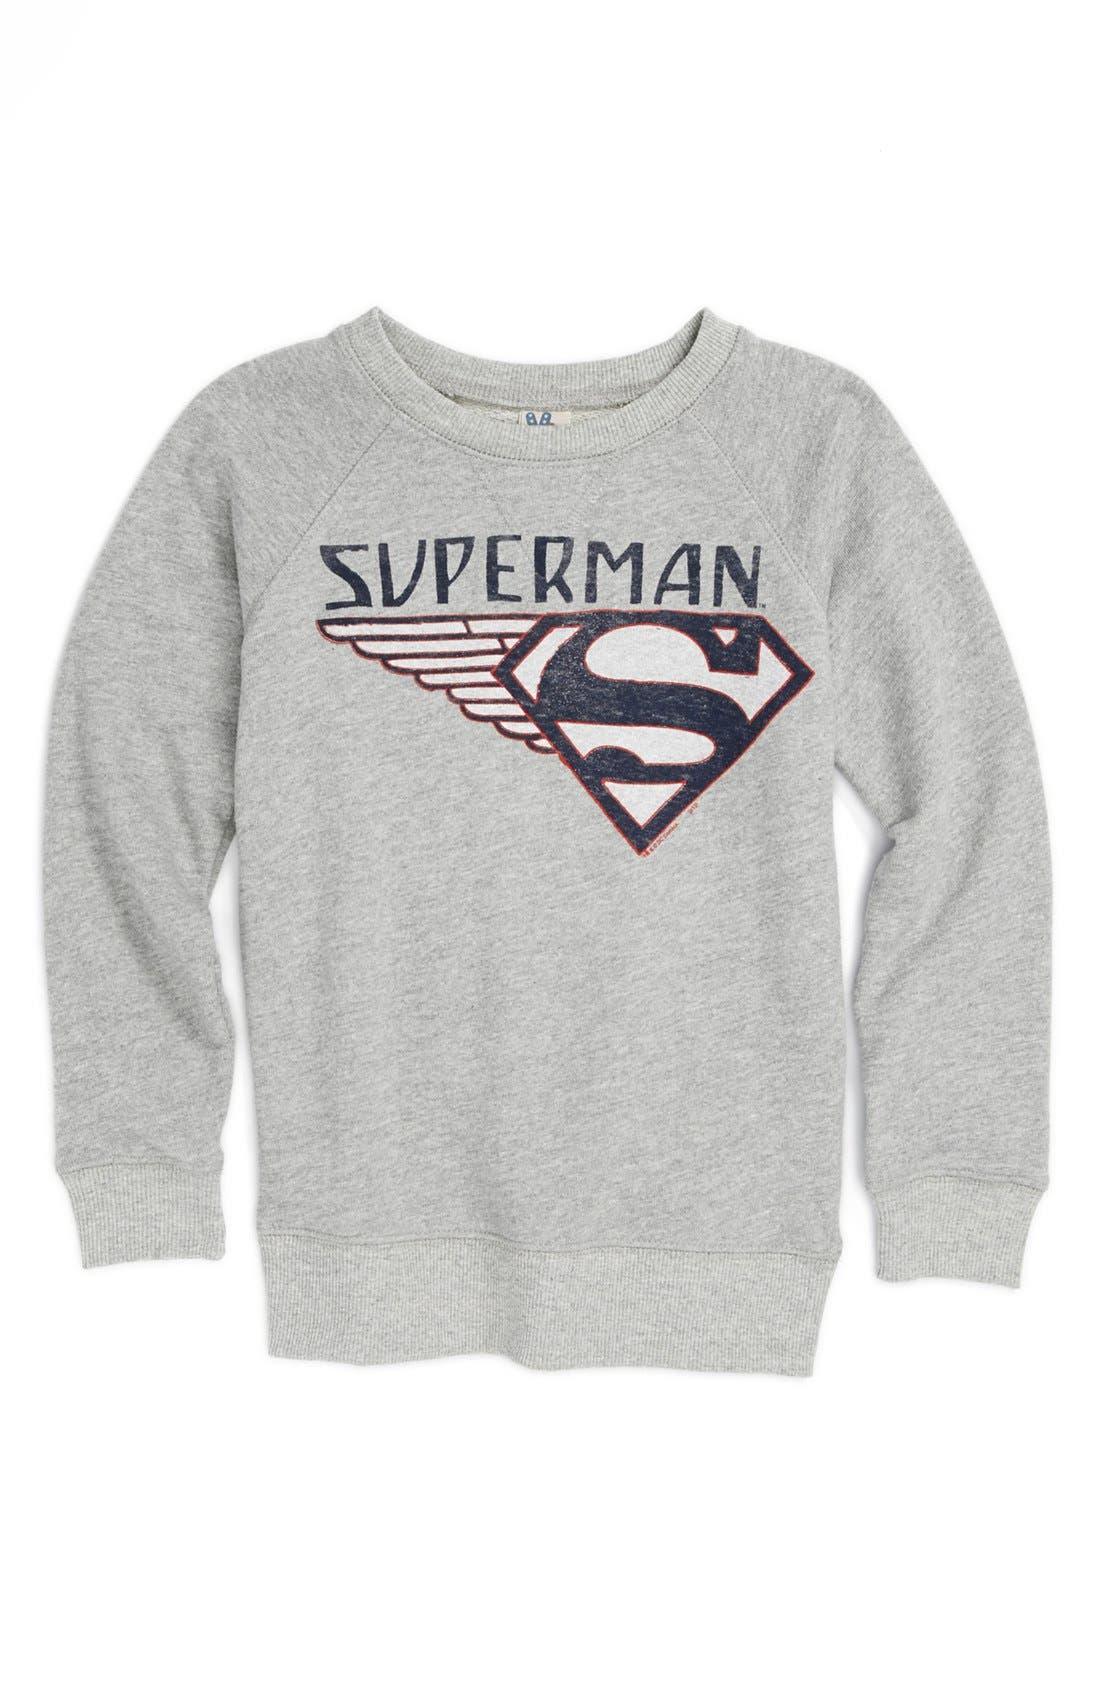 'Superman' Sweatshirt,                             Main thumbnail 1, color,                             082